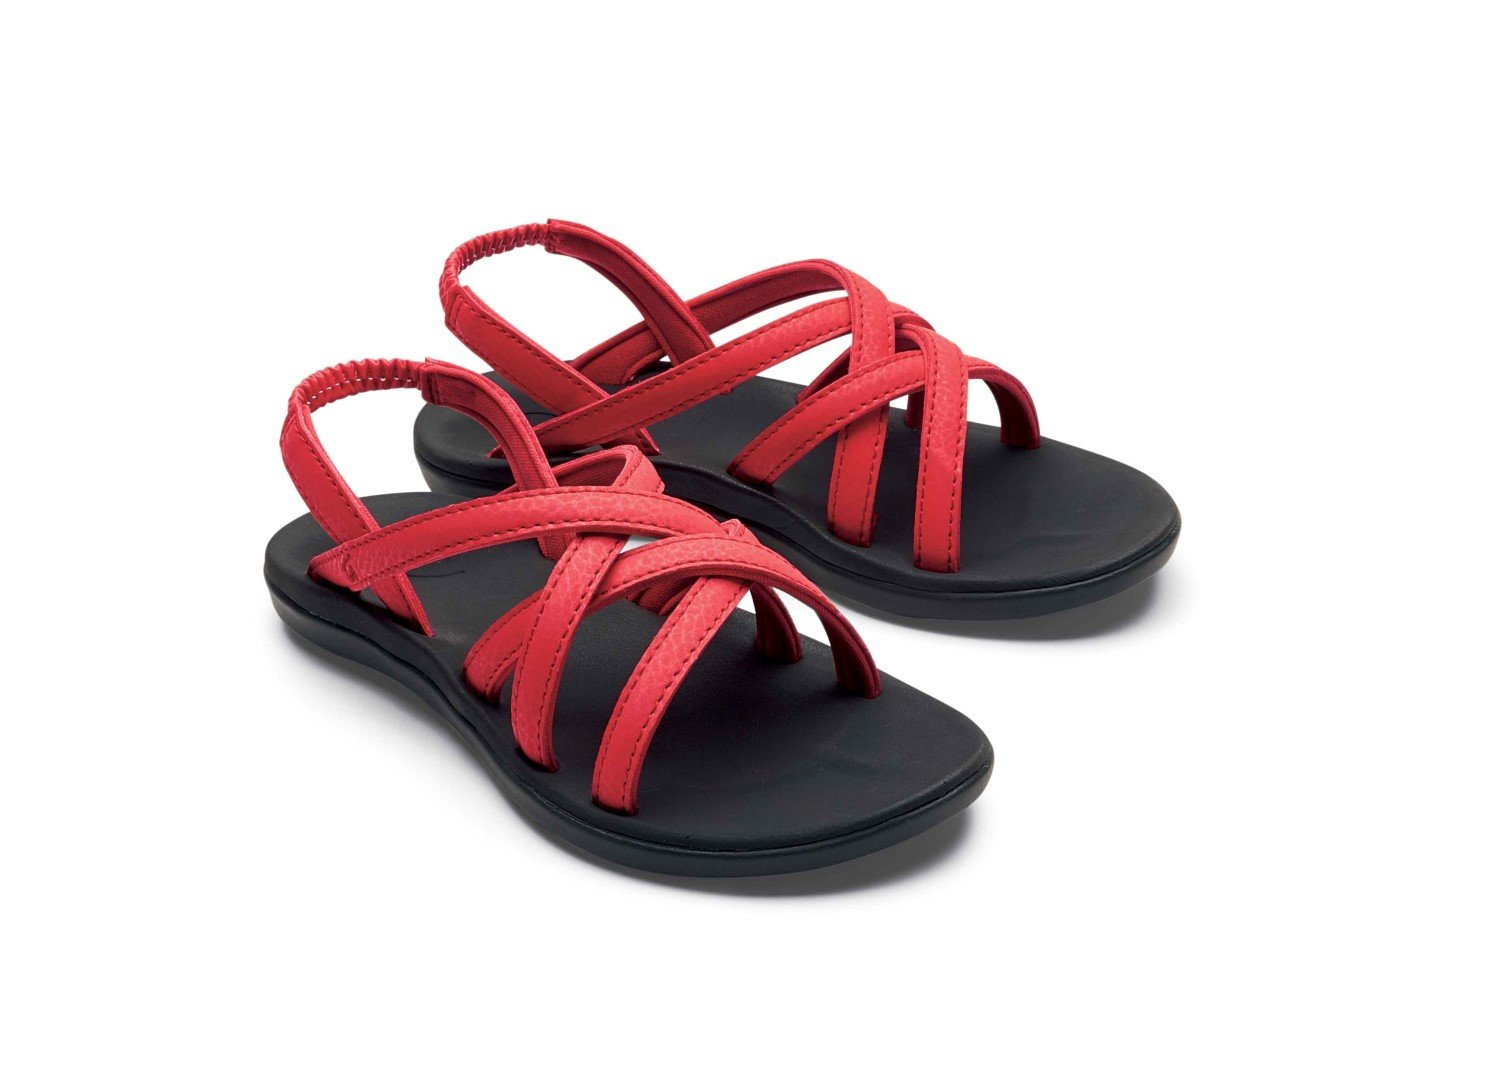 ca2d5d39947b Olukai Kalapu Girl s Supportive Sandals - Free Shipping